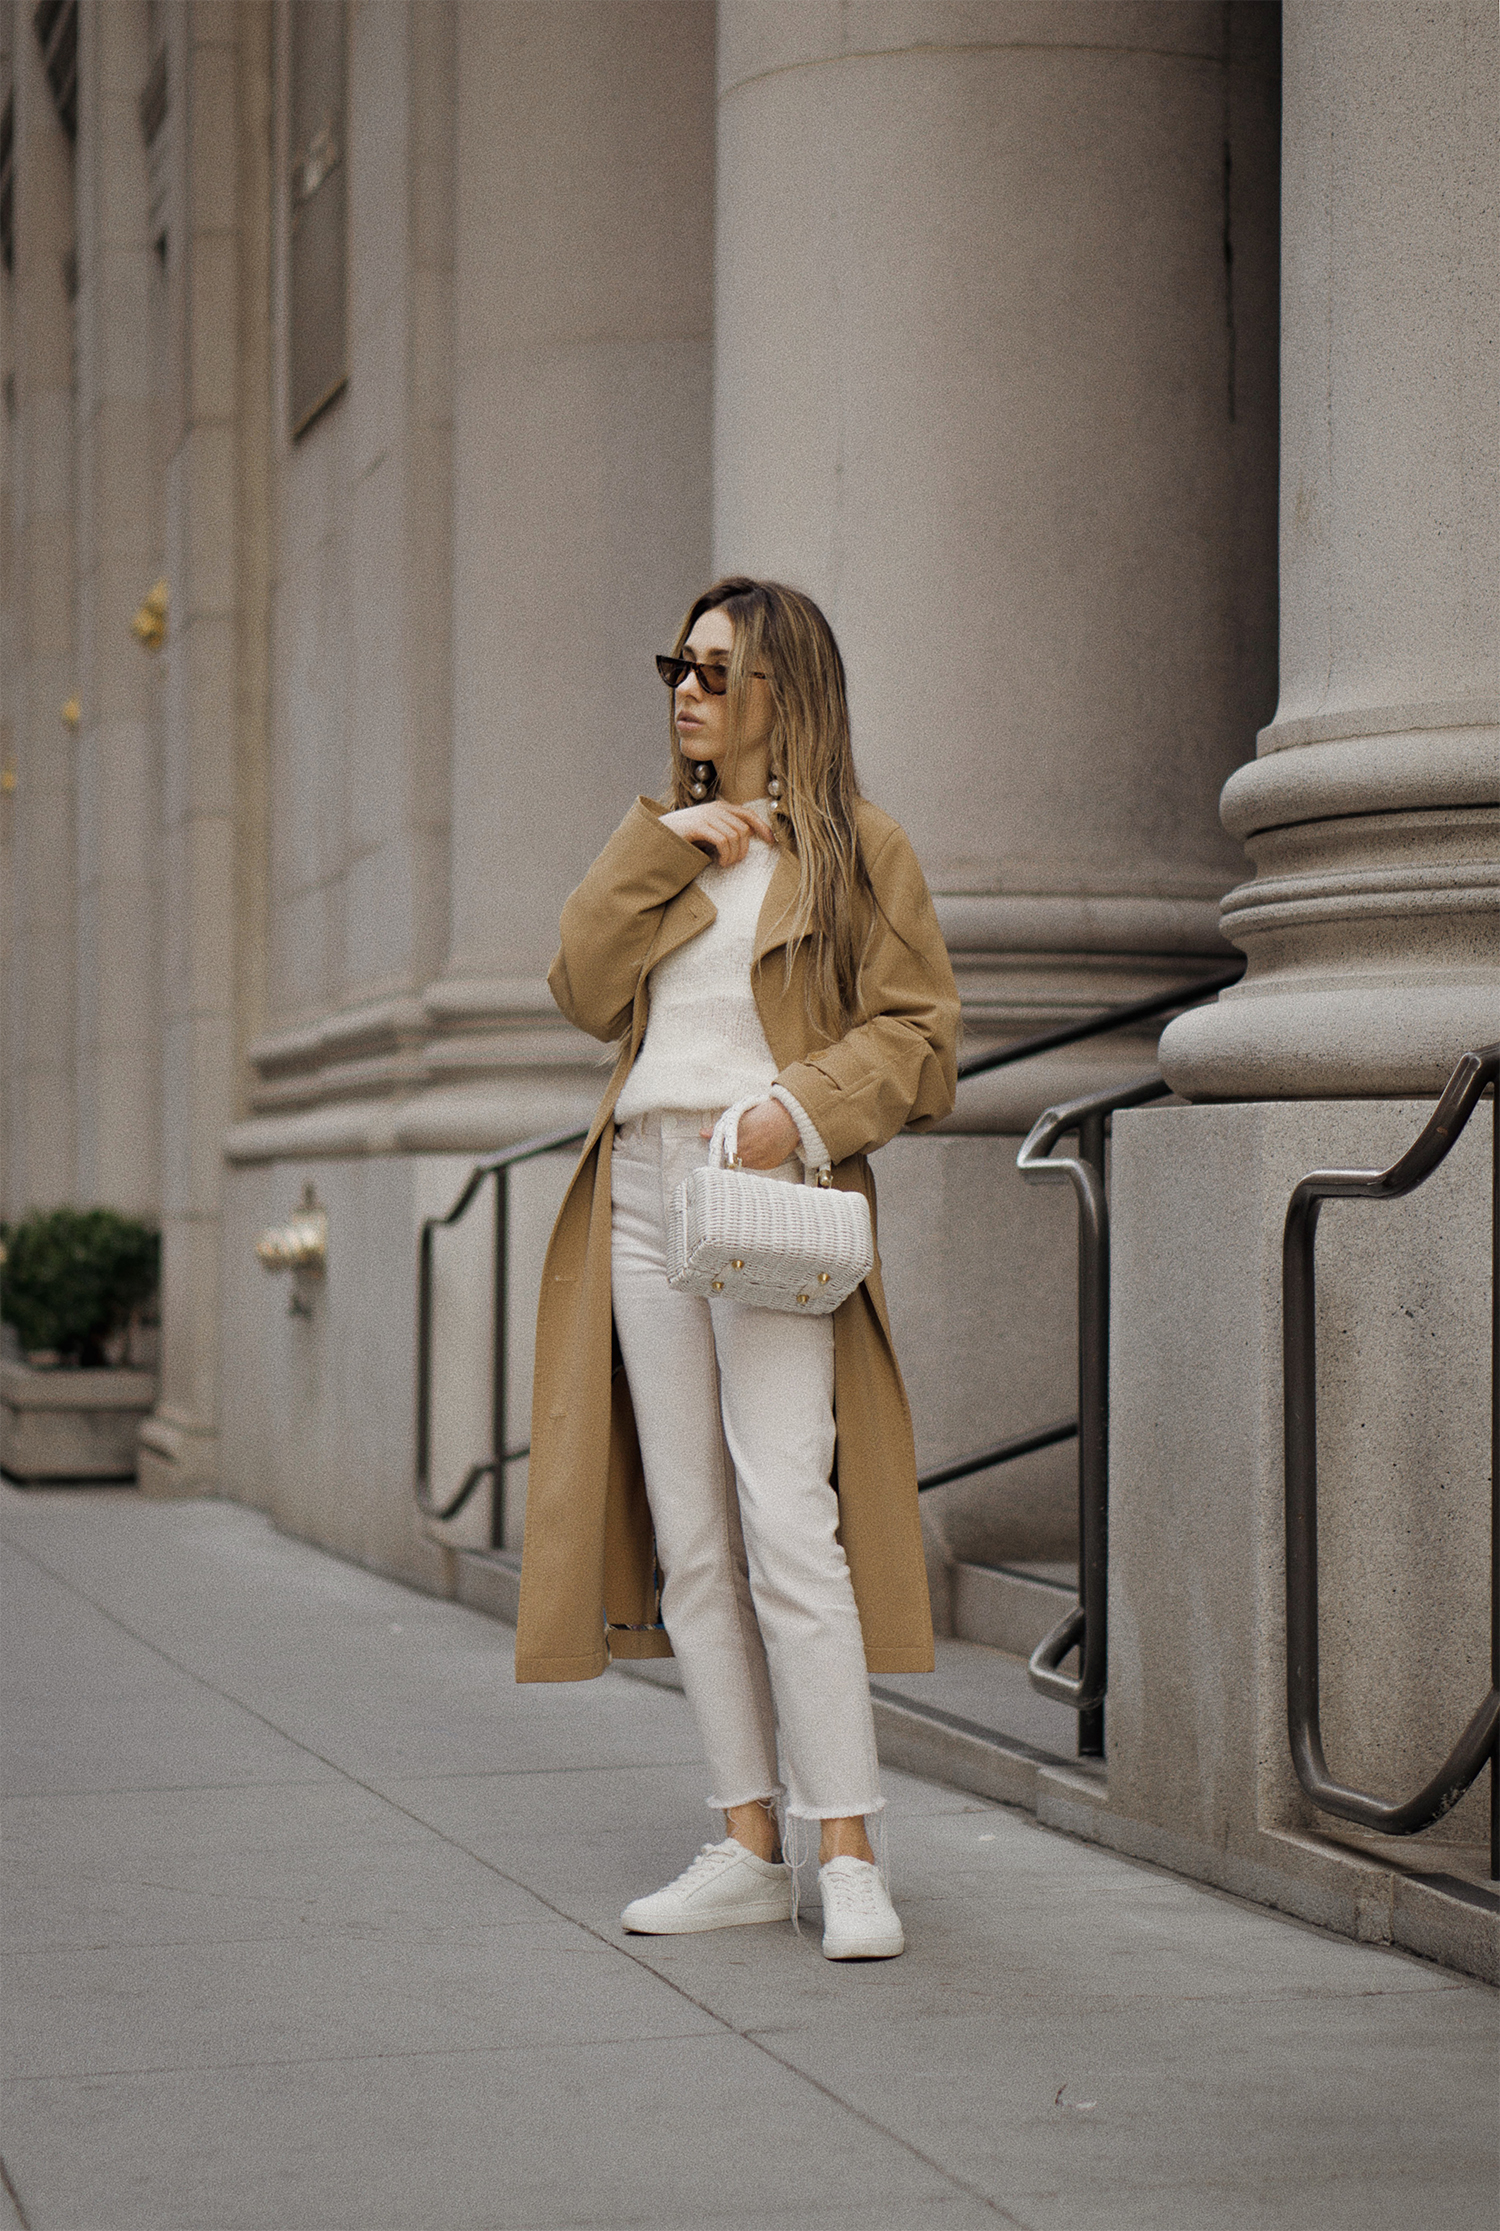 paulsmith_trenchcoat_vinceshoes_wicker_bag_white_outfit_freepeople_lenajuice_thewhiteocean_01